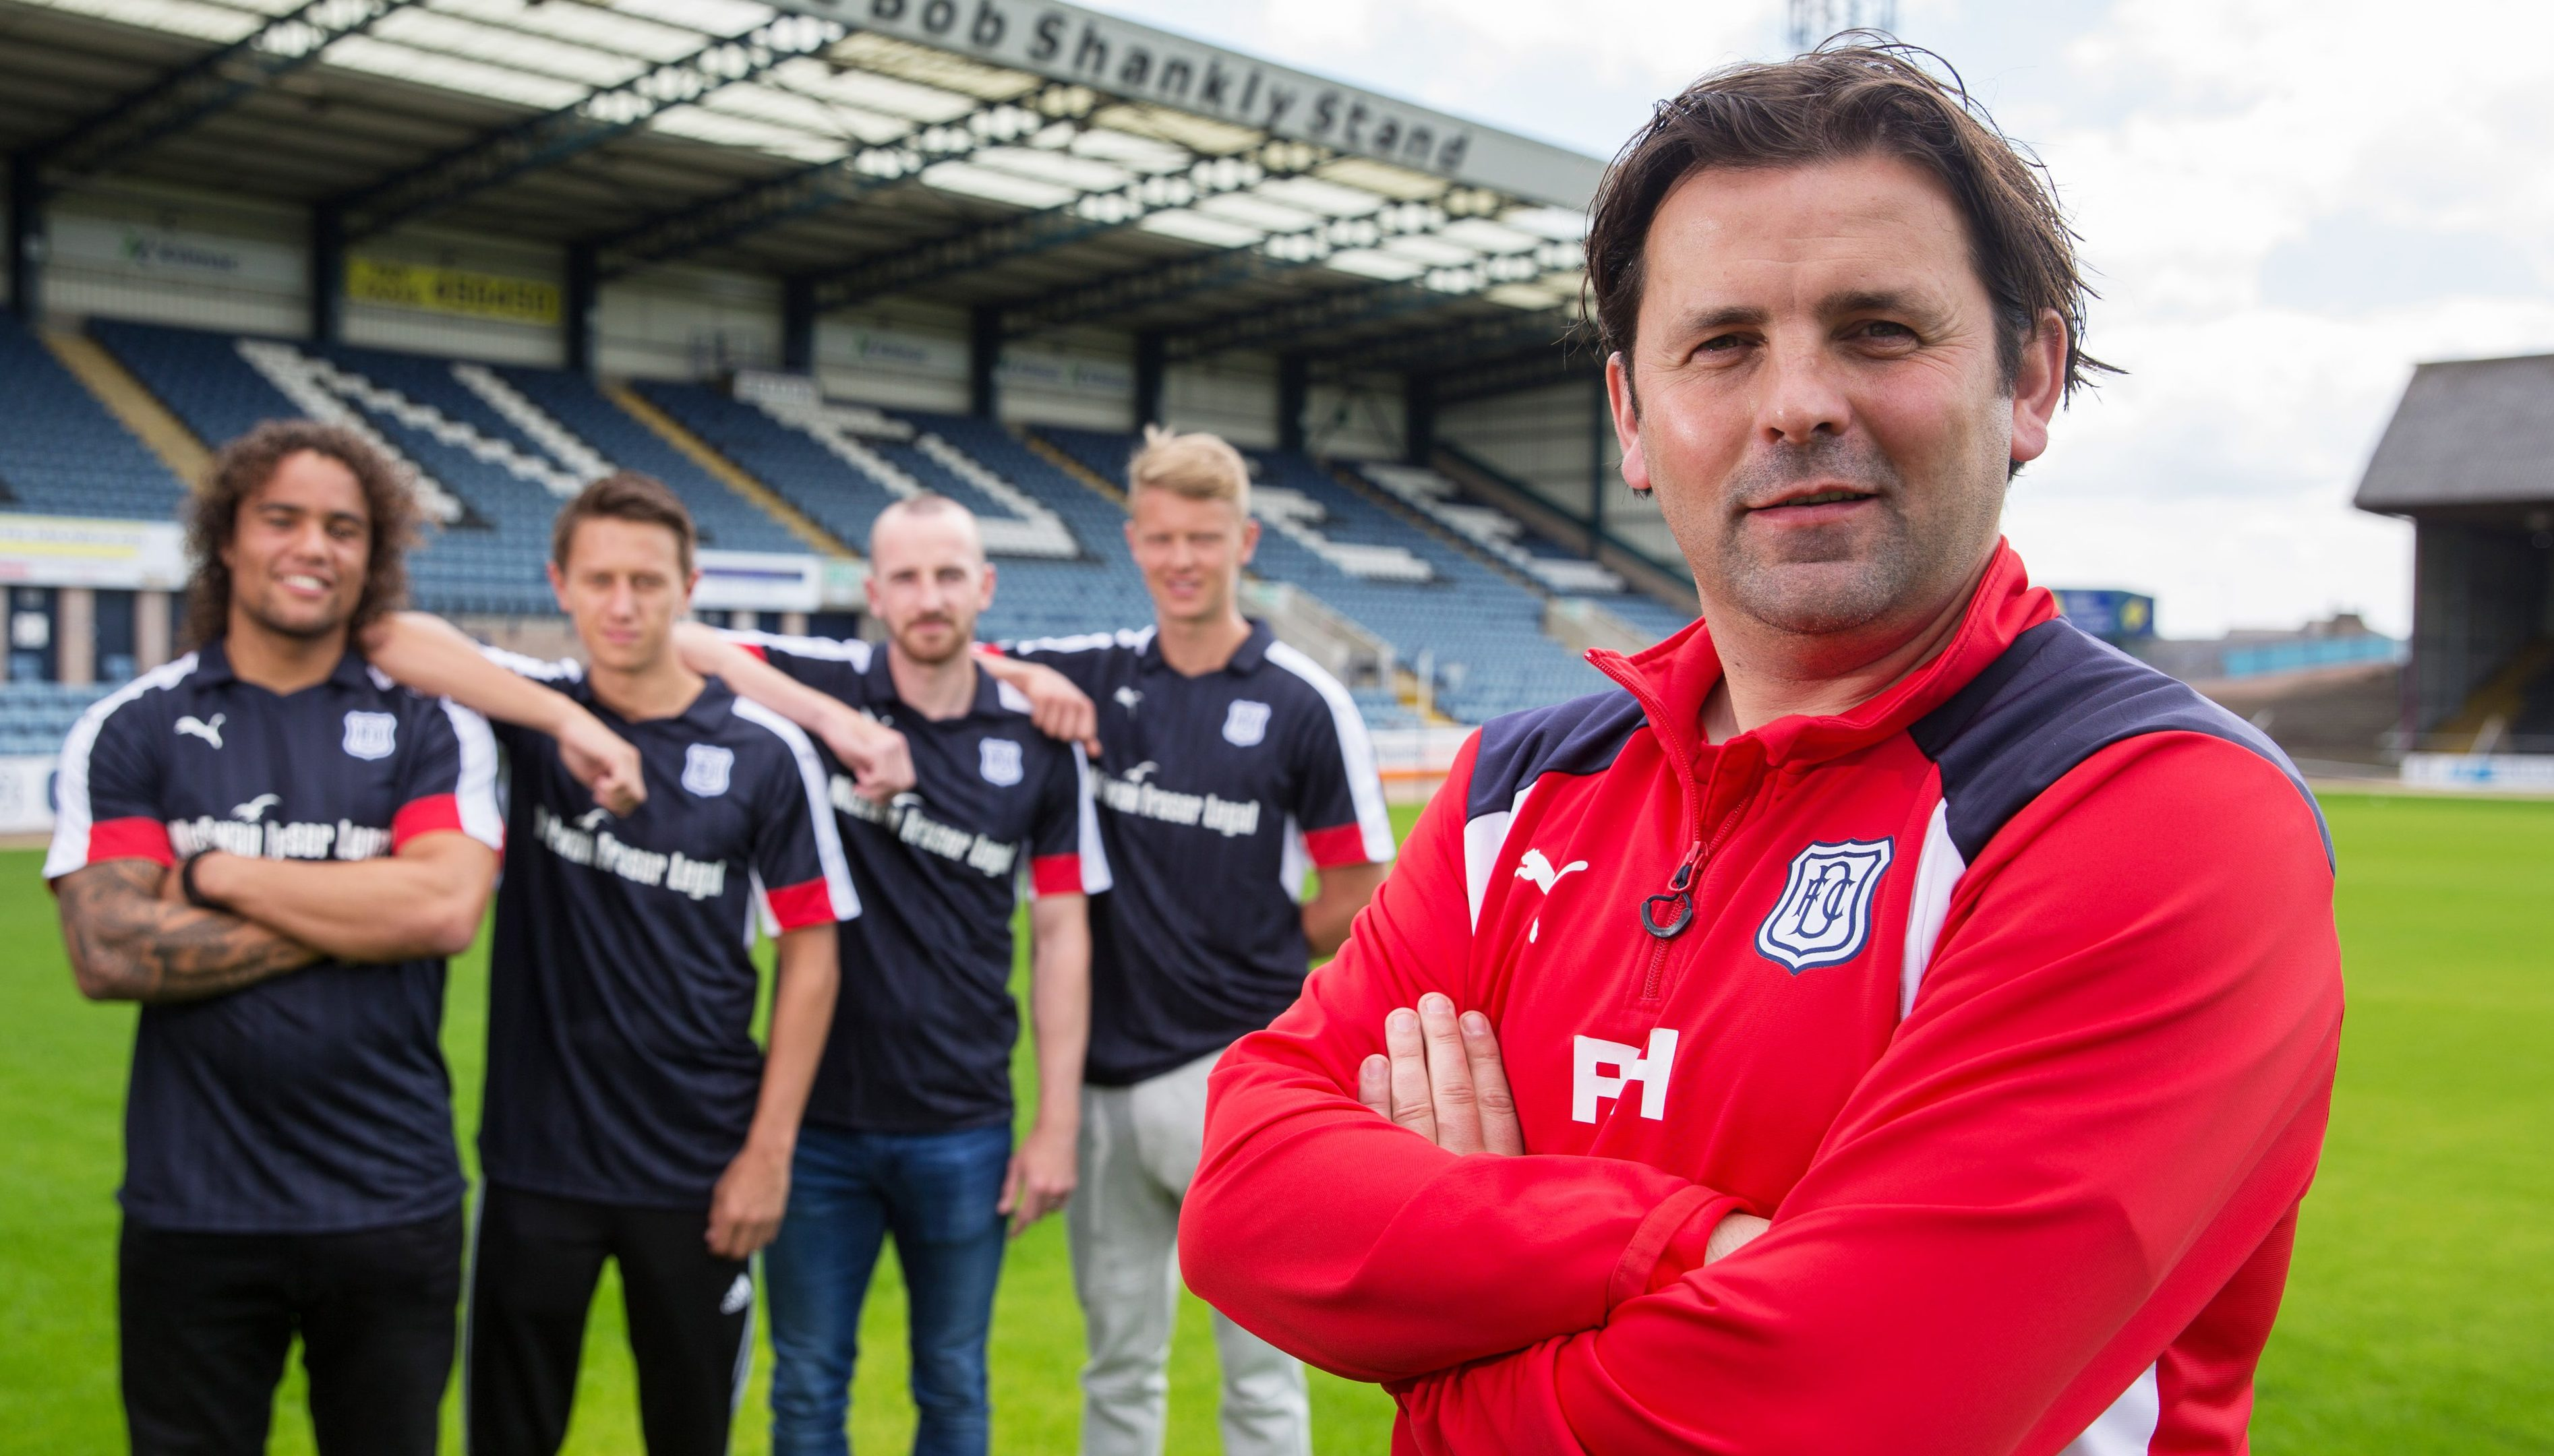 Dundee manager Paul Hartley with new signings (L-R) Yordi Teljsse, Danny Williams, James Vincent and Mark O'Hara.